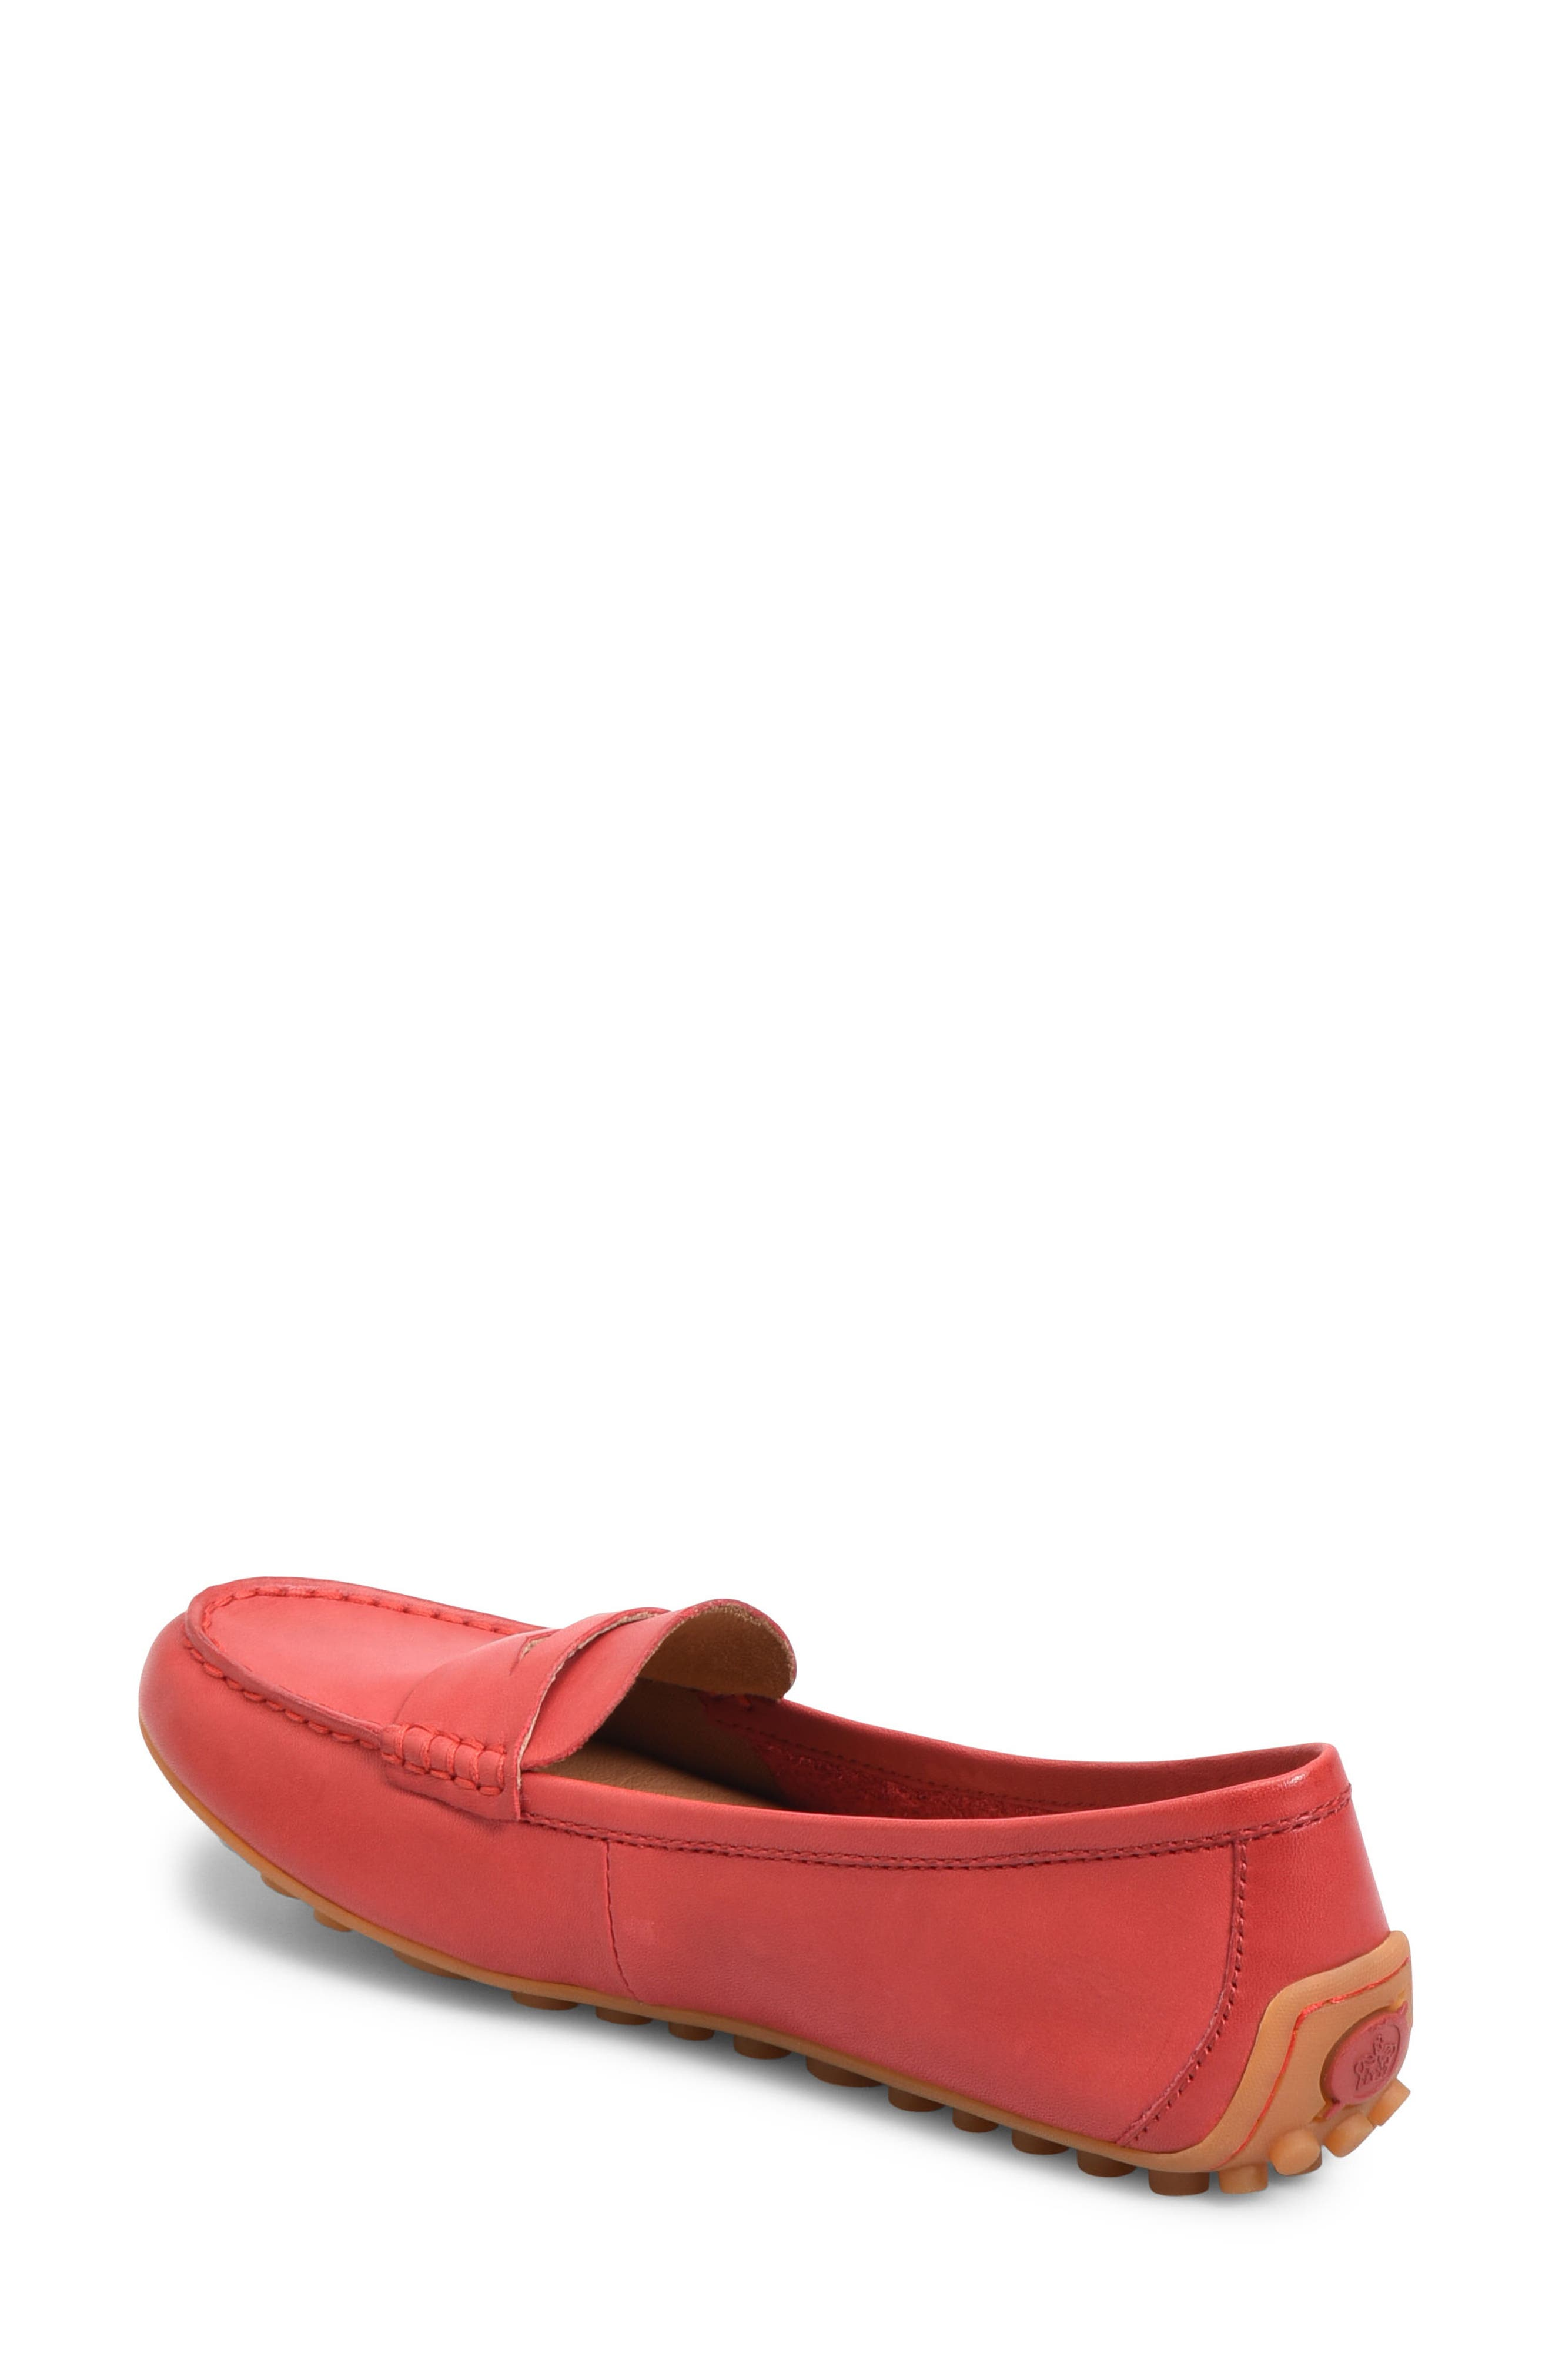 Malena Driving Loafer,                             Alternate thumbnail 2, color,                             RED LEATHER